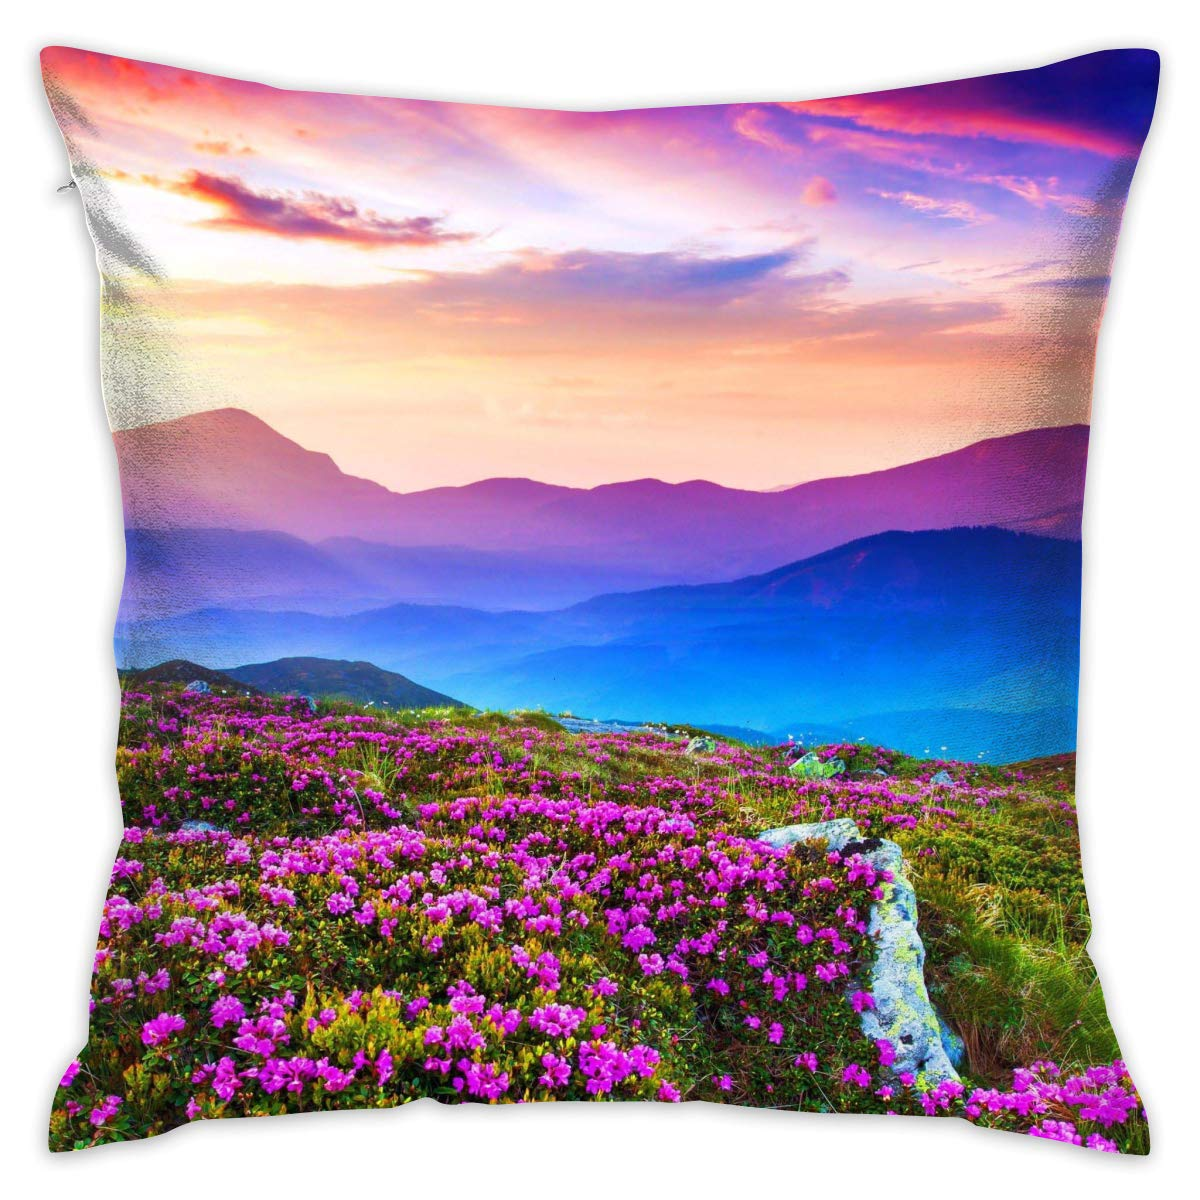 Linxher Purple Mountain Landscape Stunning Wildflowers Scenery Decorative Pillow with Insert Home Decor 16 X 16 Inch